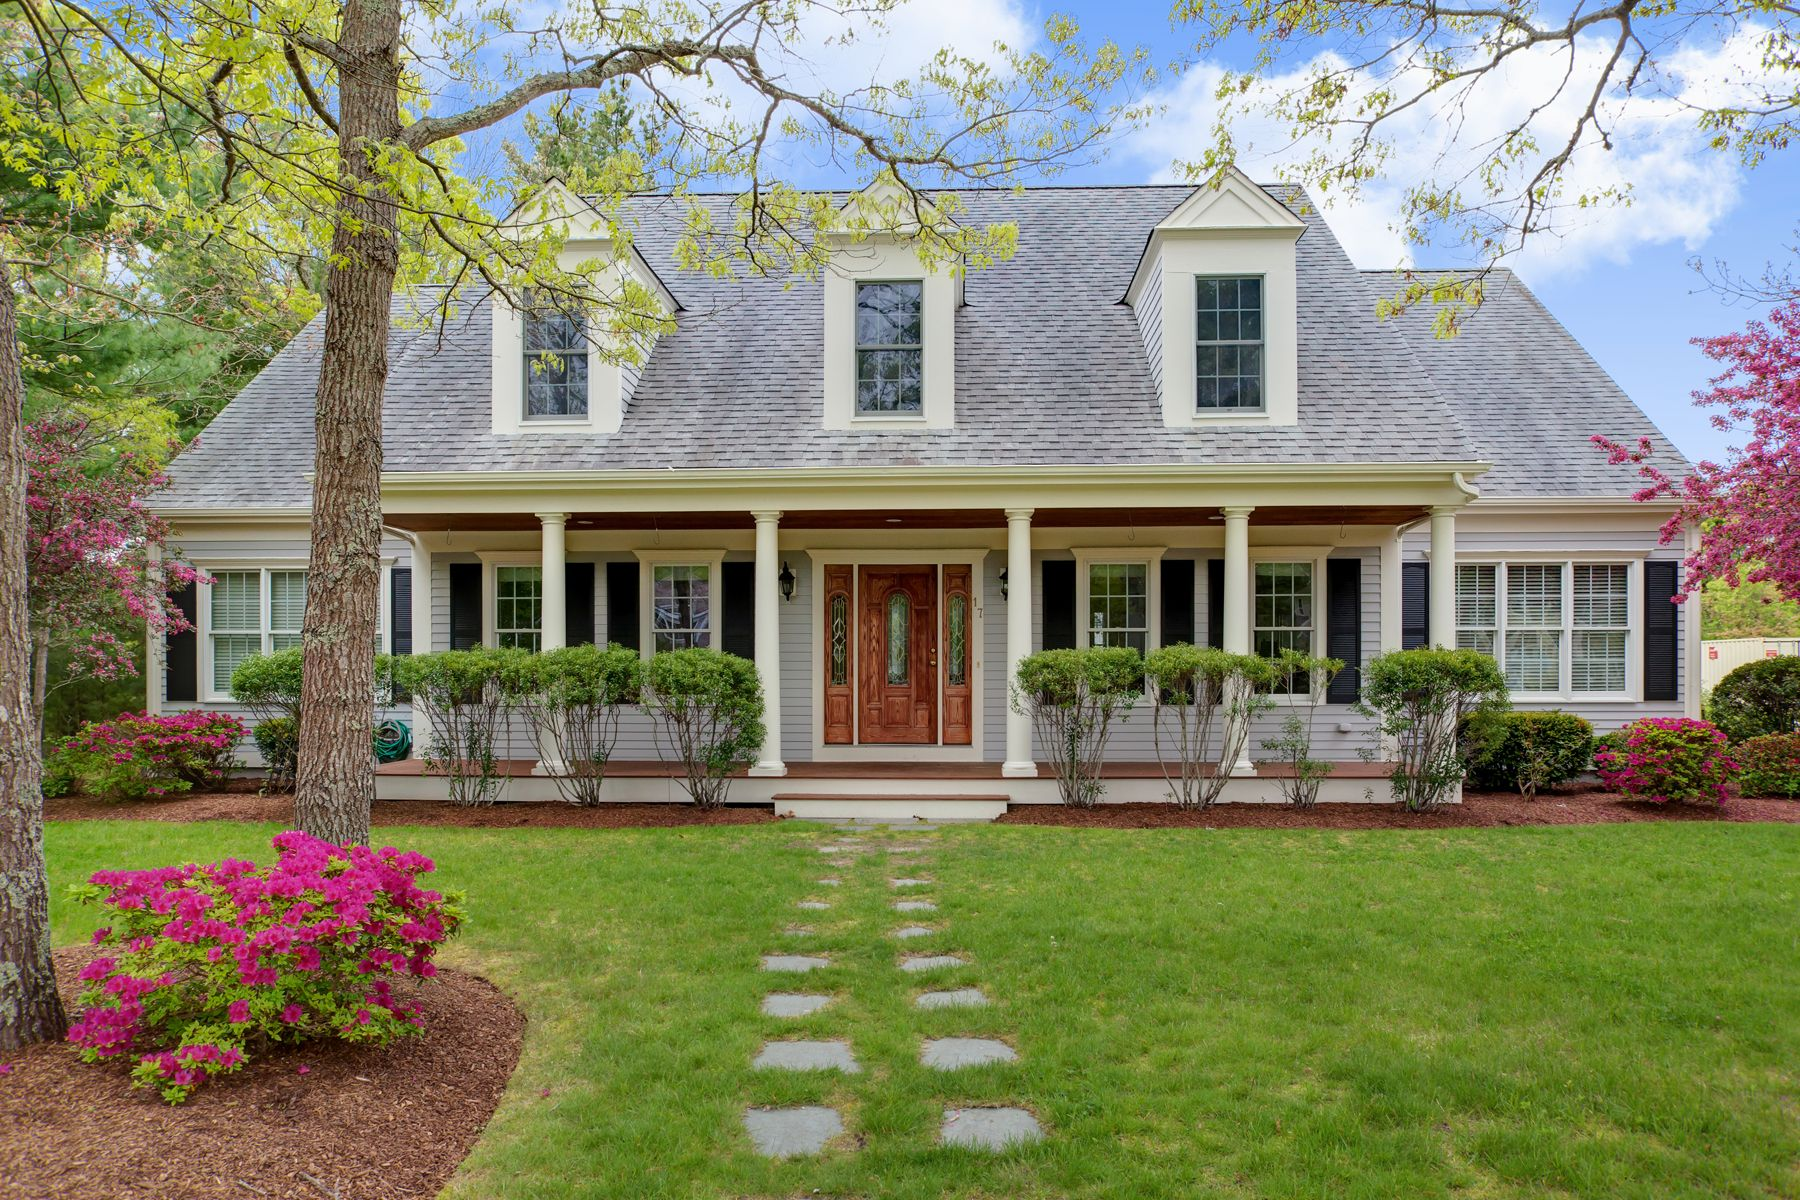 Single Family Homes for Active at Custom Spacious Cape 17 Cashs Trail East Falmouth, Massachusetts 02536 United States